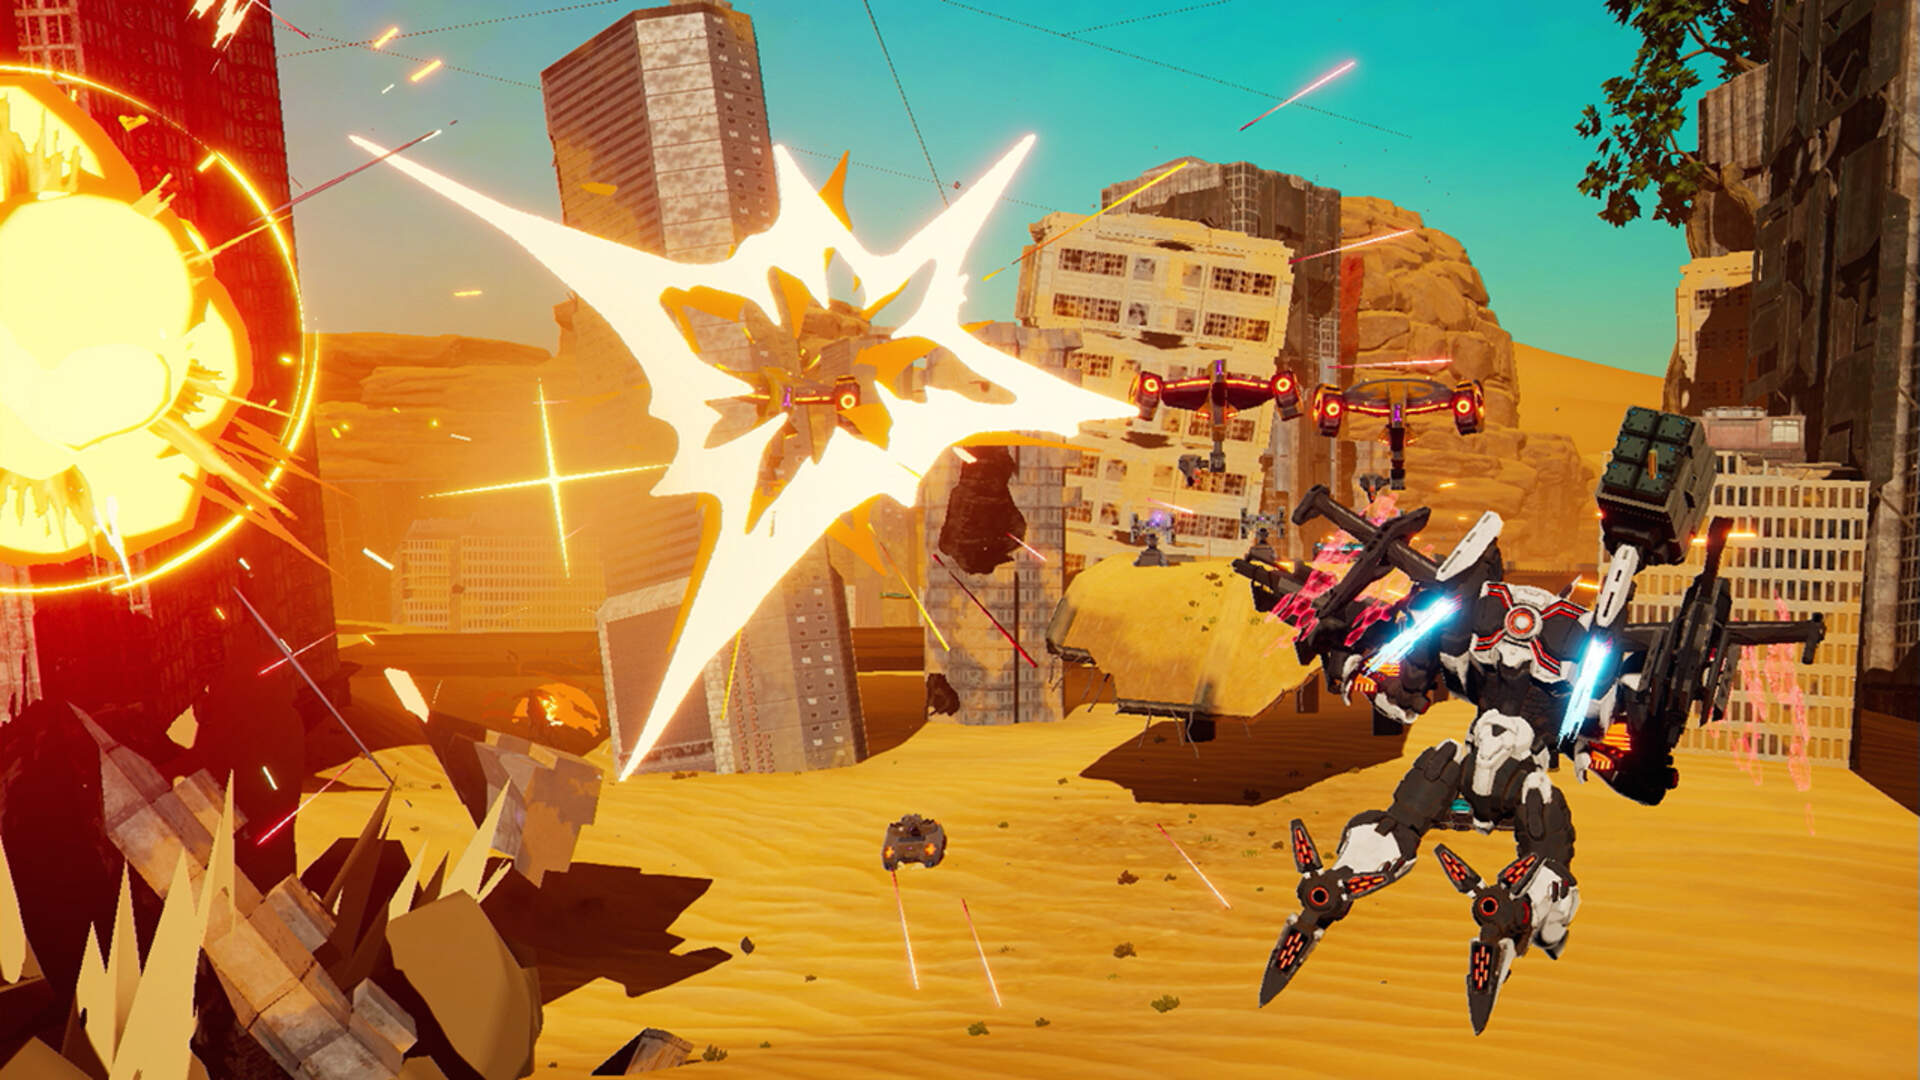 Previously Switch-Exclusive Mech Romp Daemon X Machina is Coming to Steam Soon